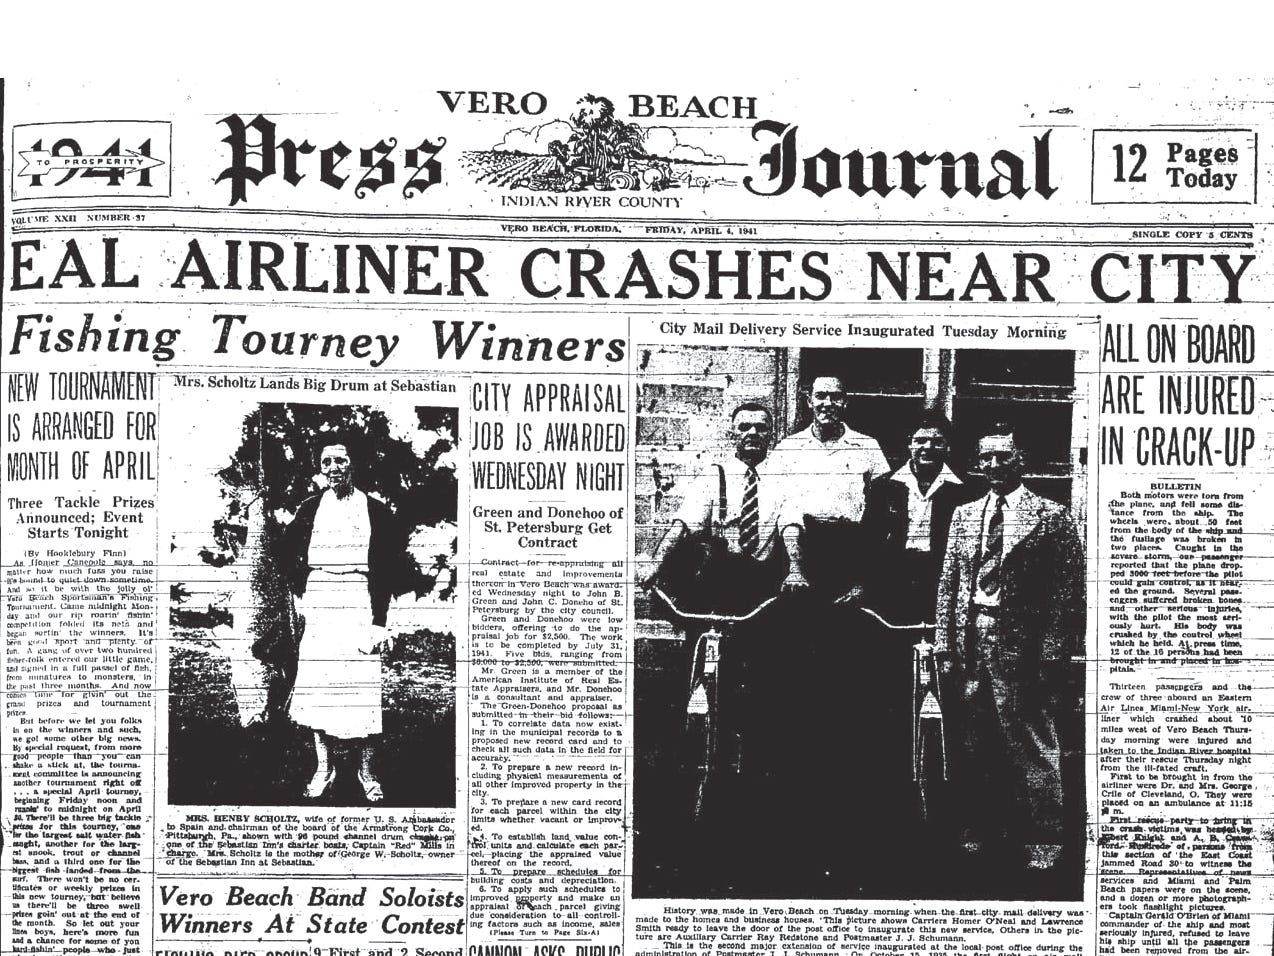 April 4, 1941, EAL Airliner Crashes Near City